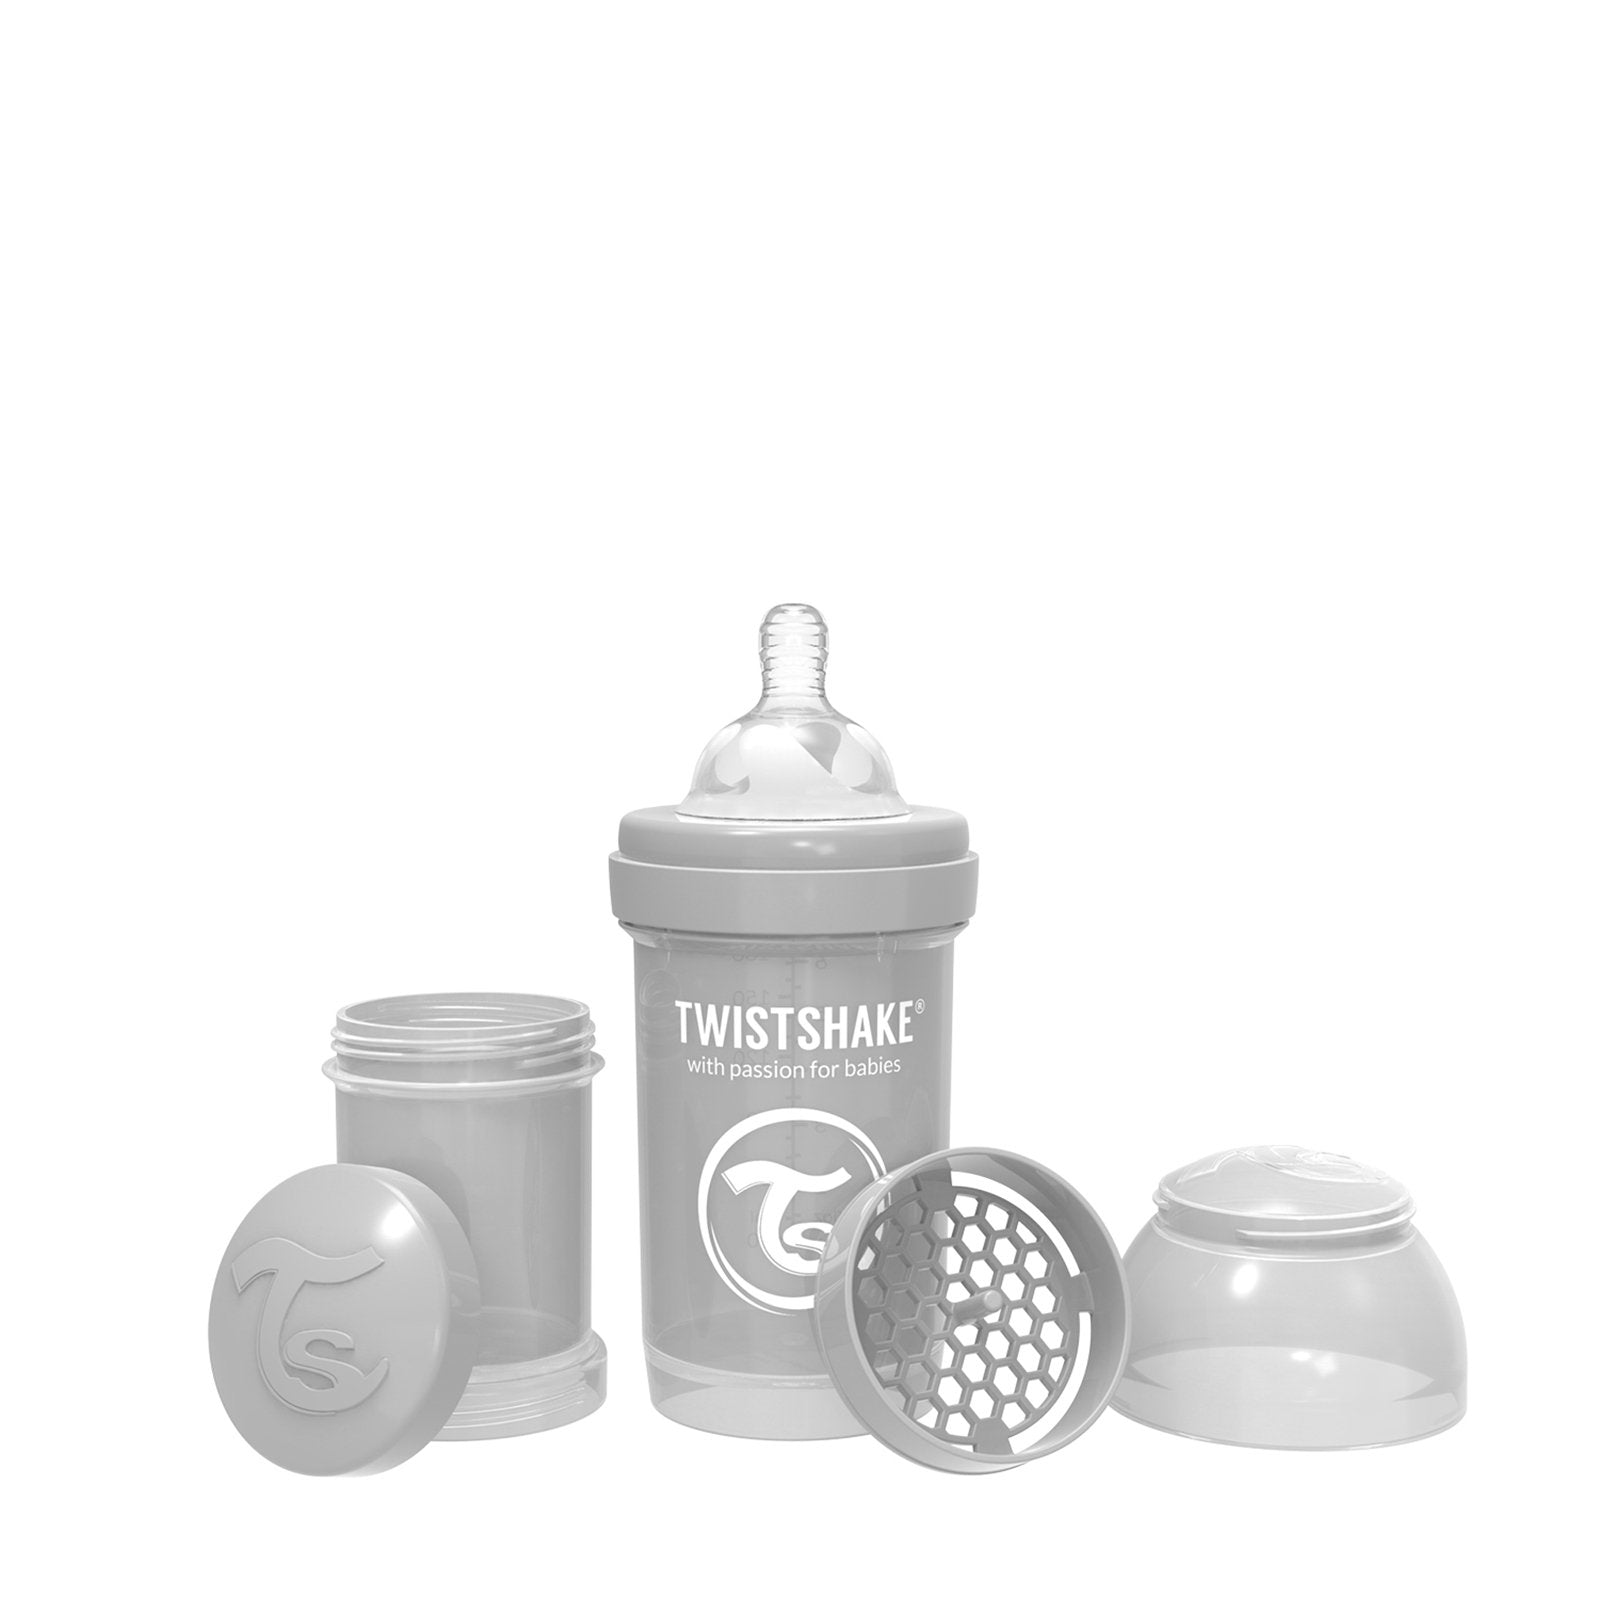 Anti-Colic Premium PP Baby Bottle 180ml Pastel Grey